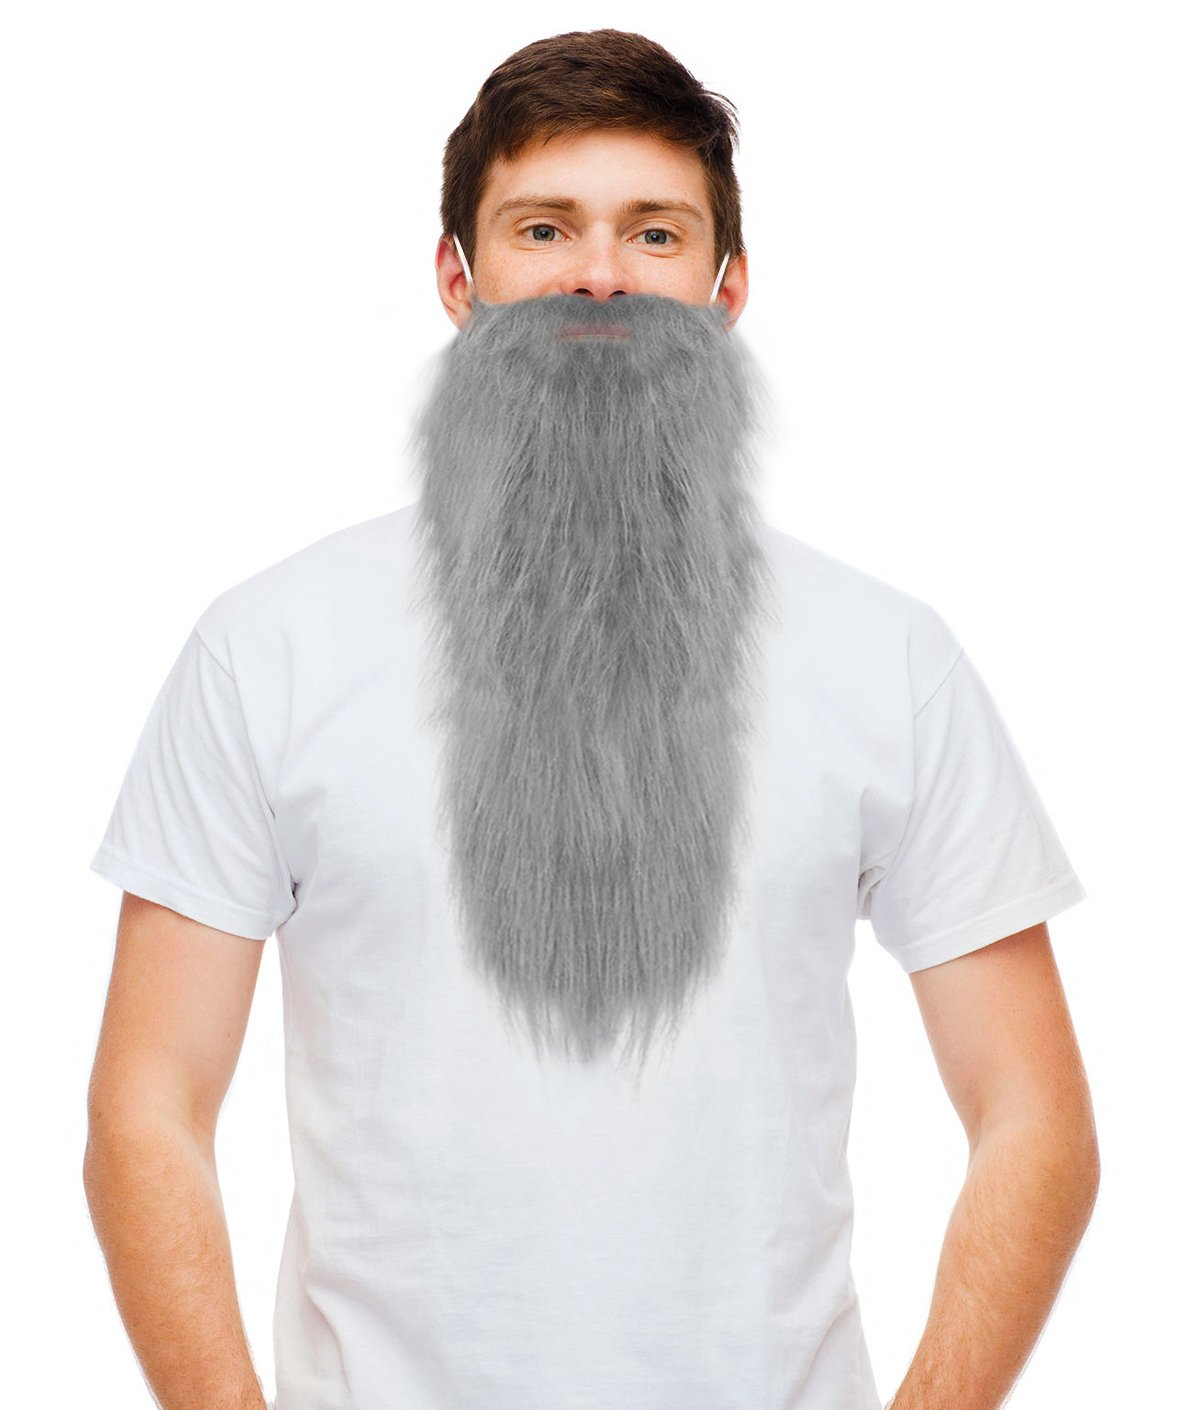 713189fd5d5 Get Quotations · Costume Adventure Grey Hillbilly Fake Dwarf Beard - One  Size Fits All